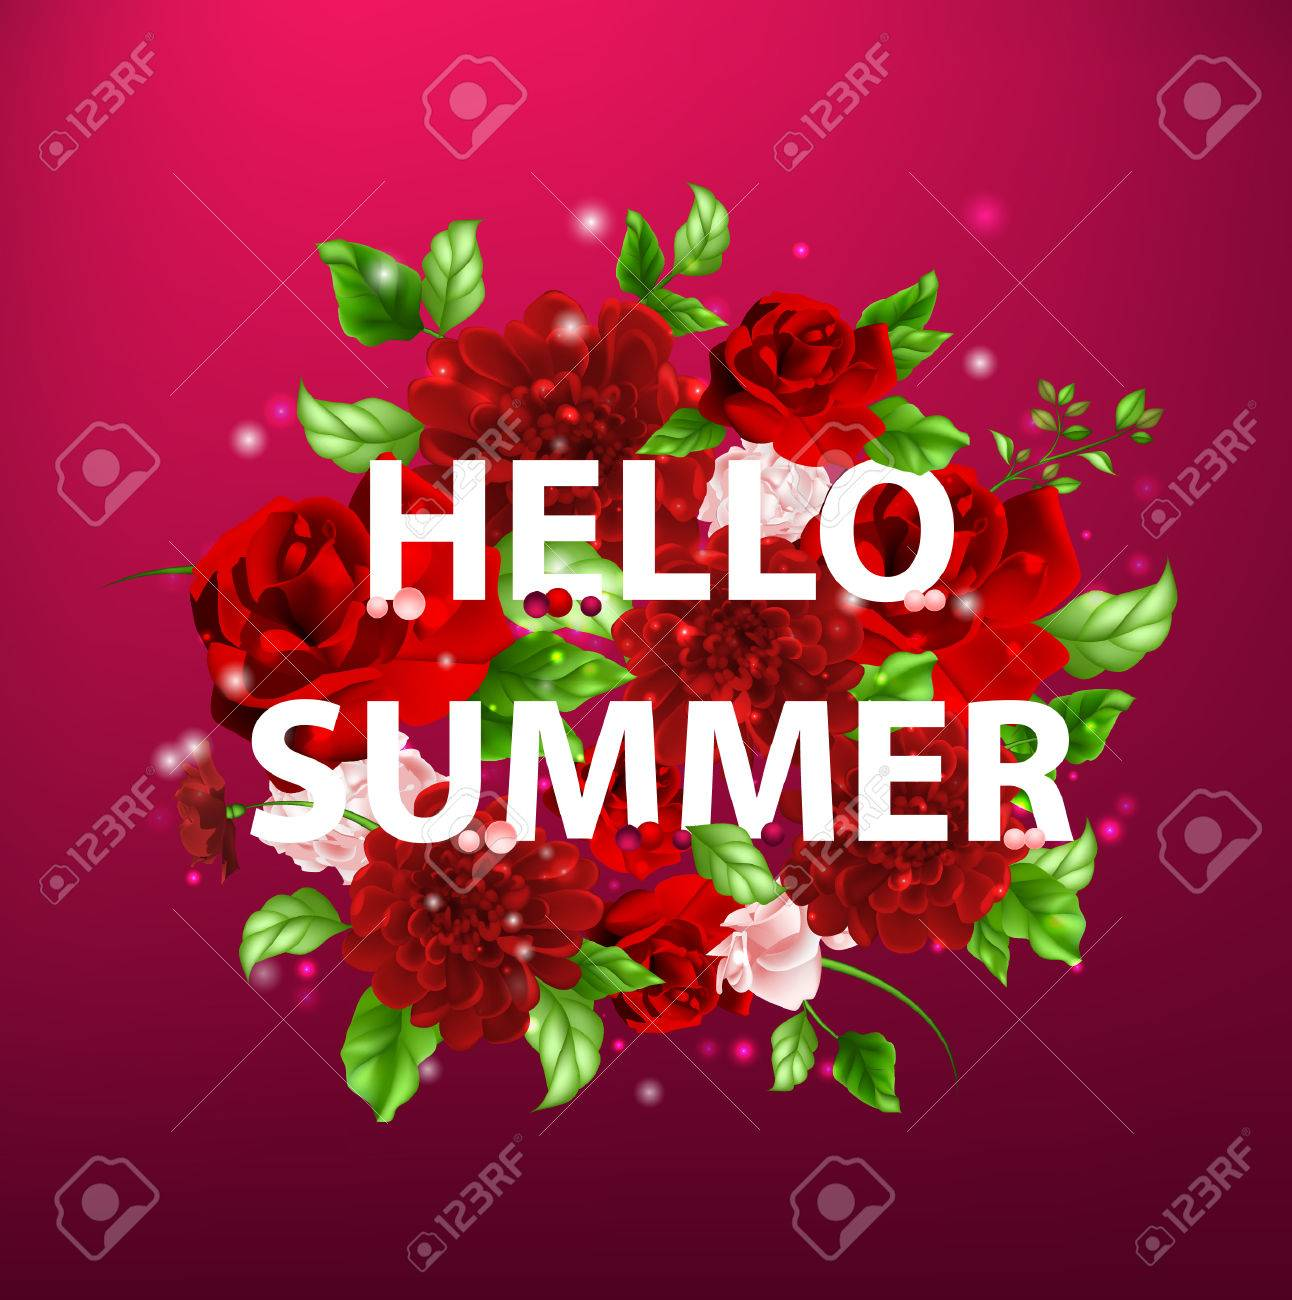 Stock Vector Illustration Of Flowers With Lettering Hello Summer